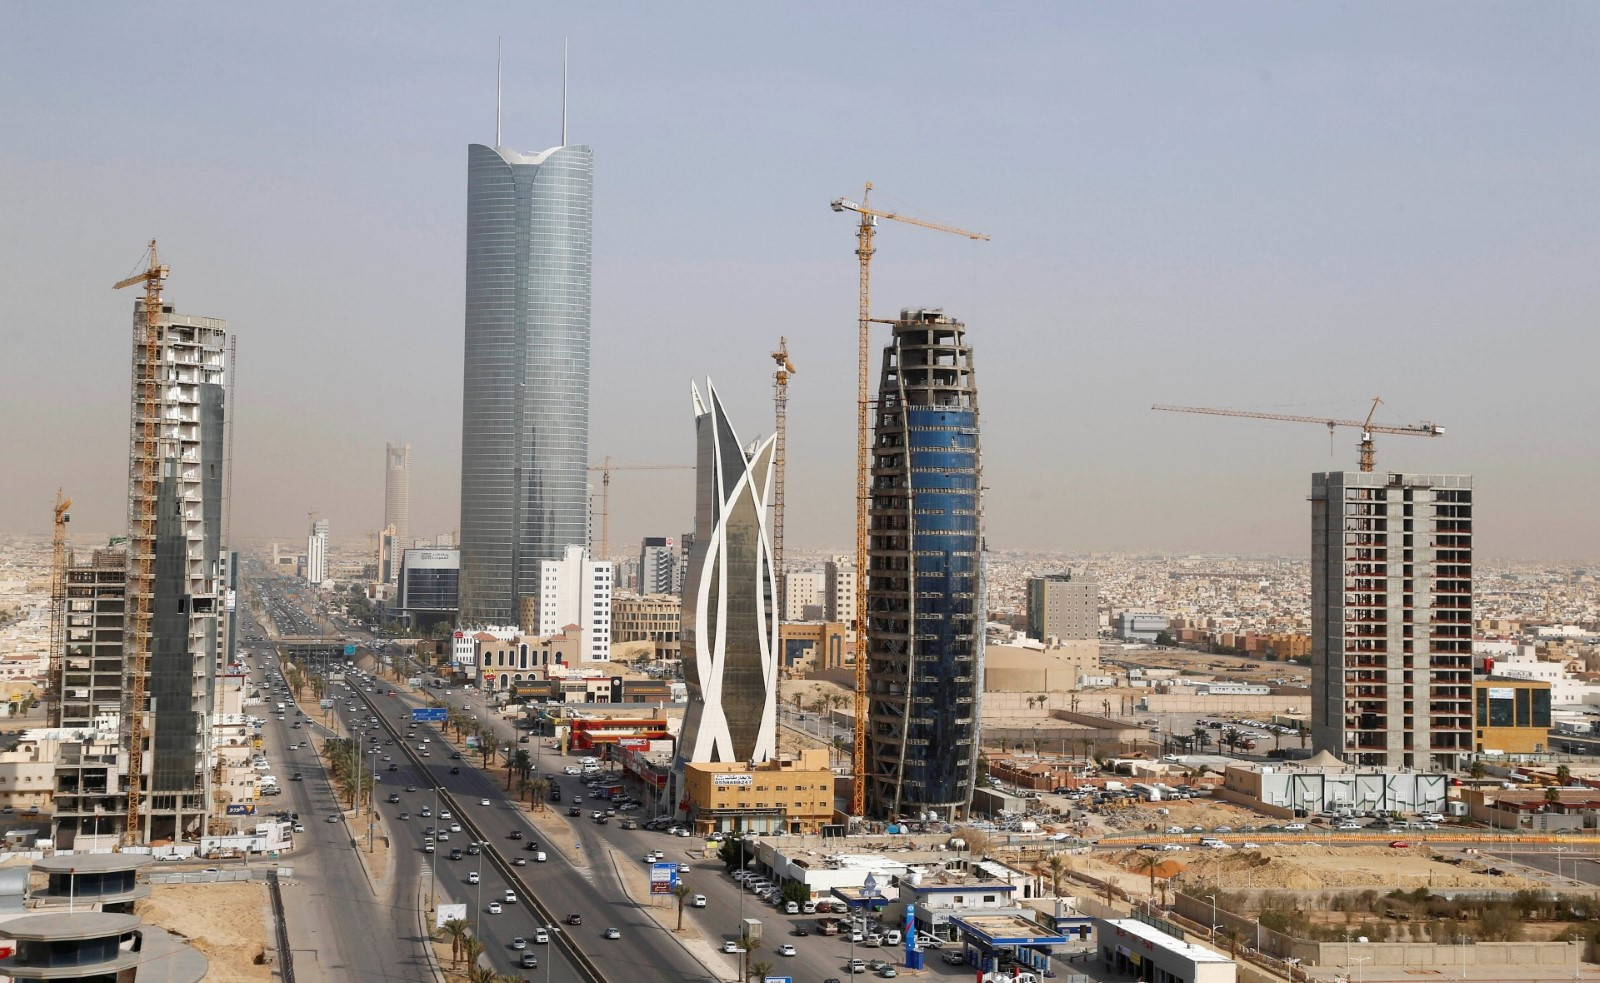 the global financial crisis saudi arabia and uae Normally, saudi arabia draws much external attention for reasons relating to the importance of oil as a key global commodity and the kingdom's geo-political position in the gulf region's security.